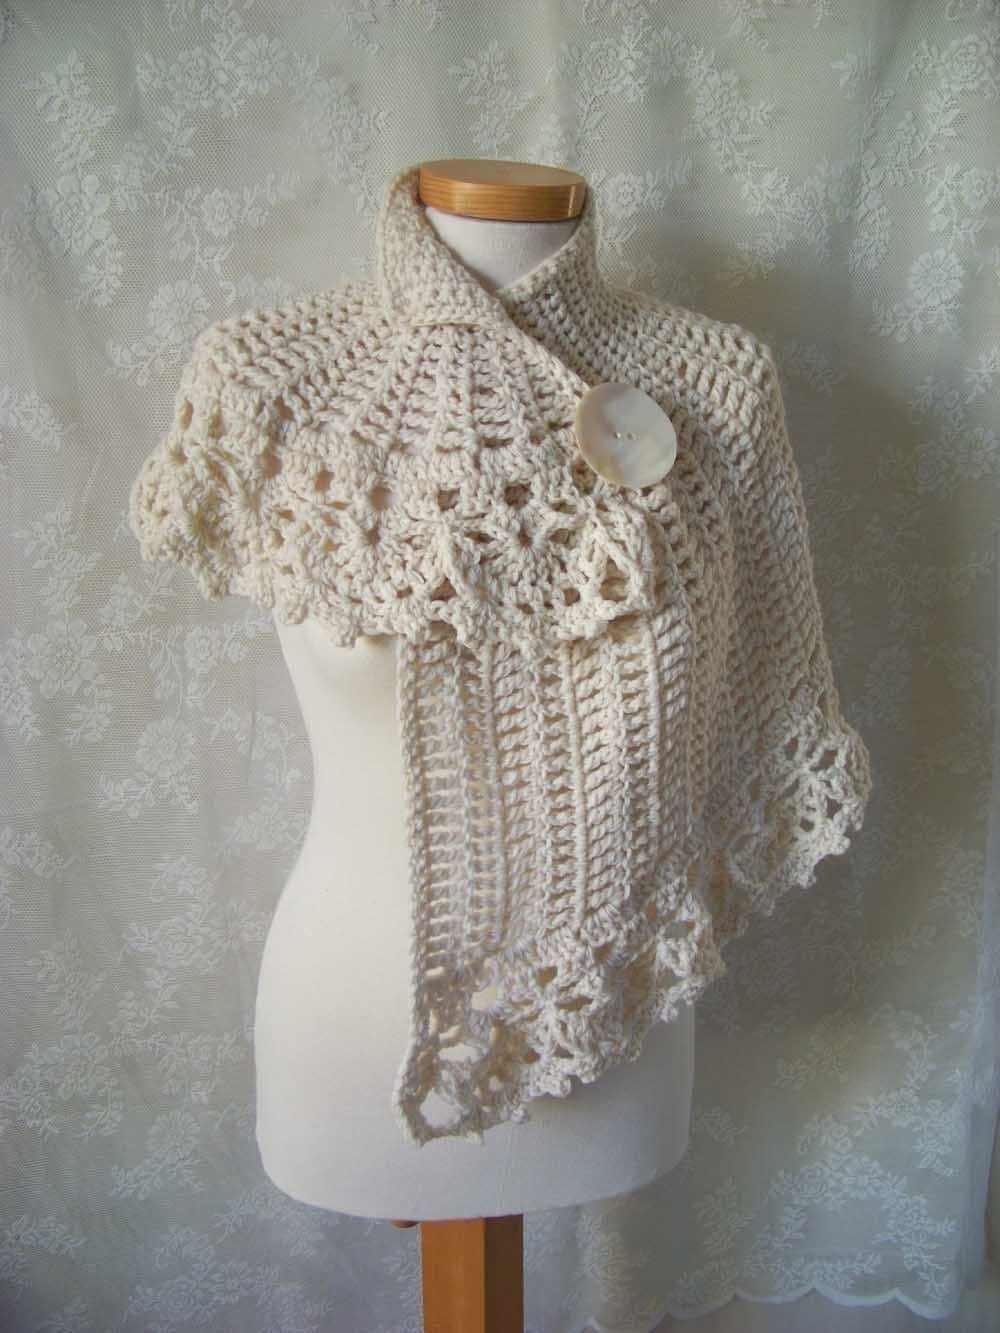 House of white Birches Crochet Patterns - Crochet Patterns and